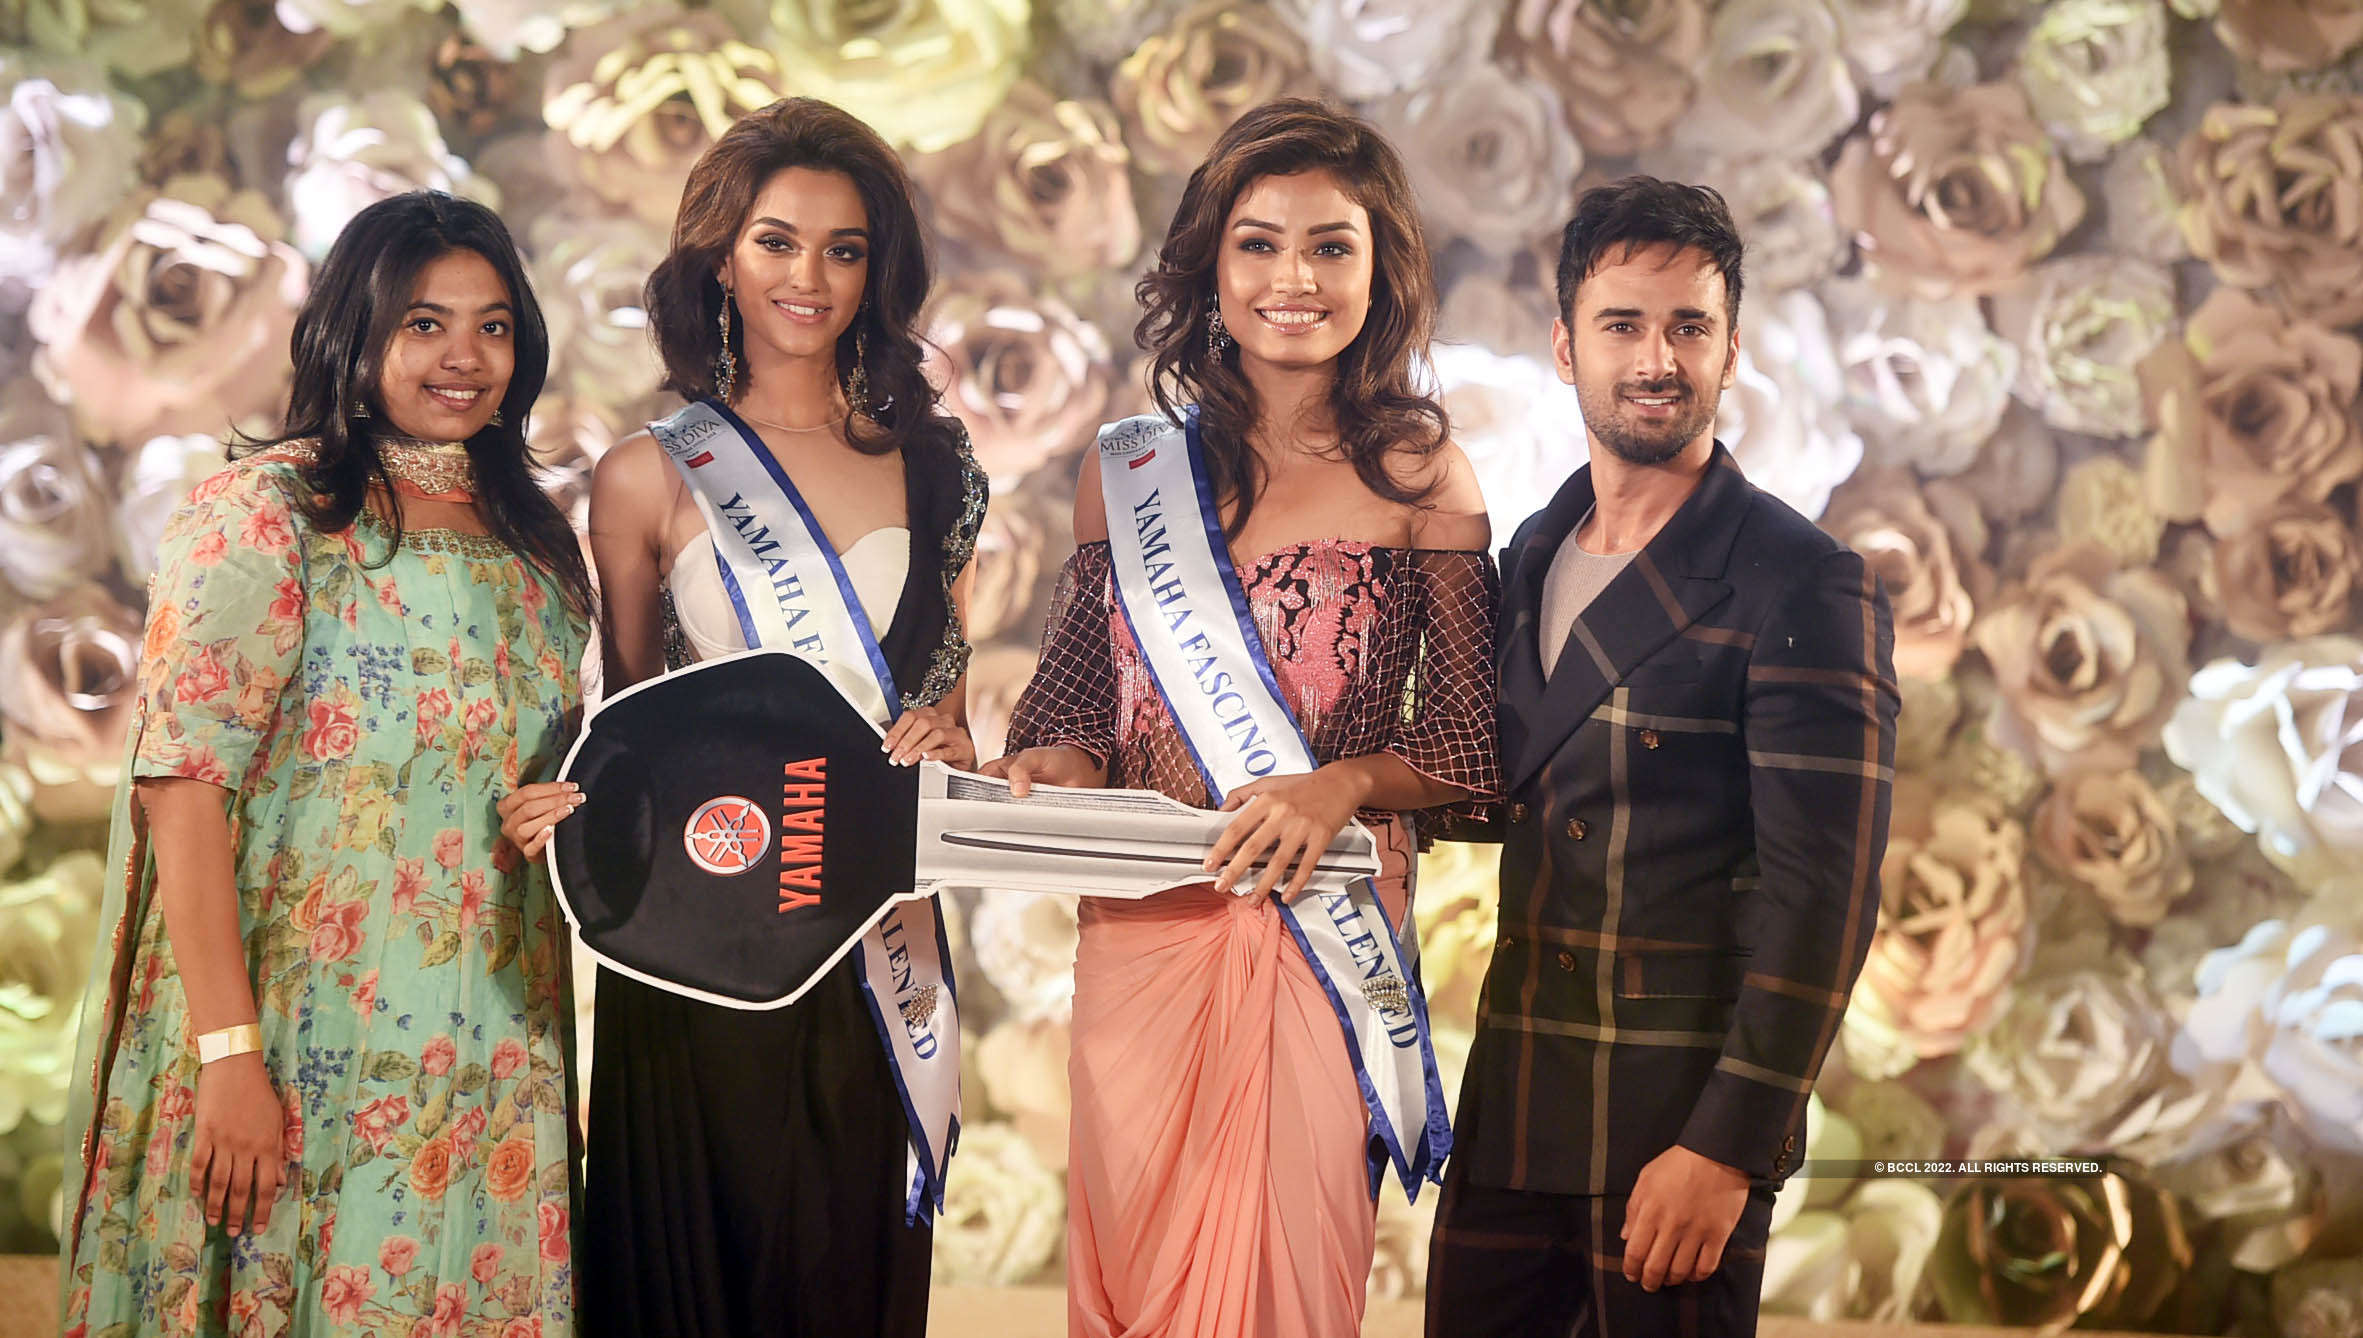 Miss Diva 2018 Delhi sub contest: Winners and performances